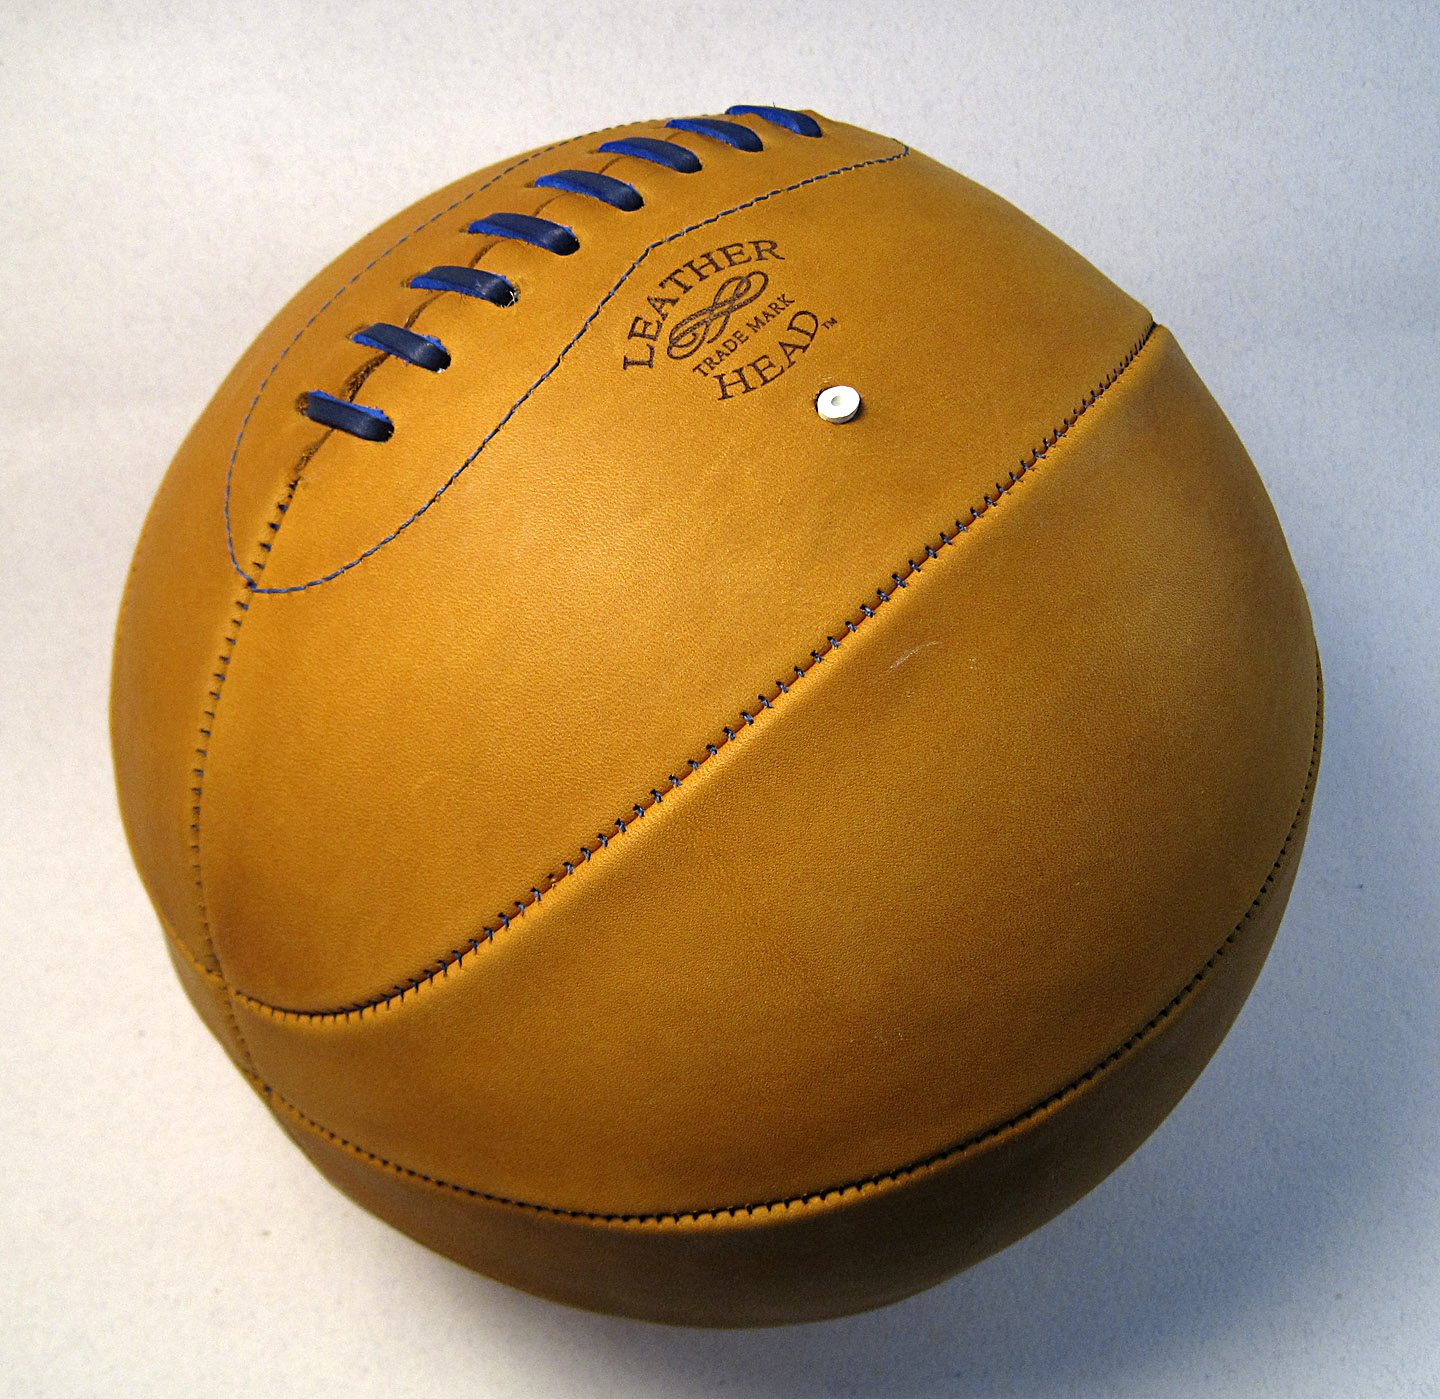 Leather Head Sports: Leather Head Basketball designed and ...